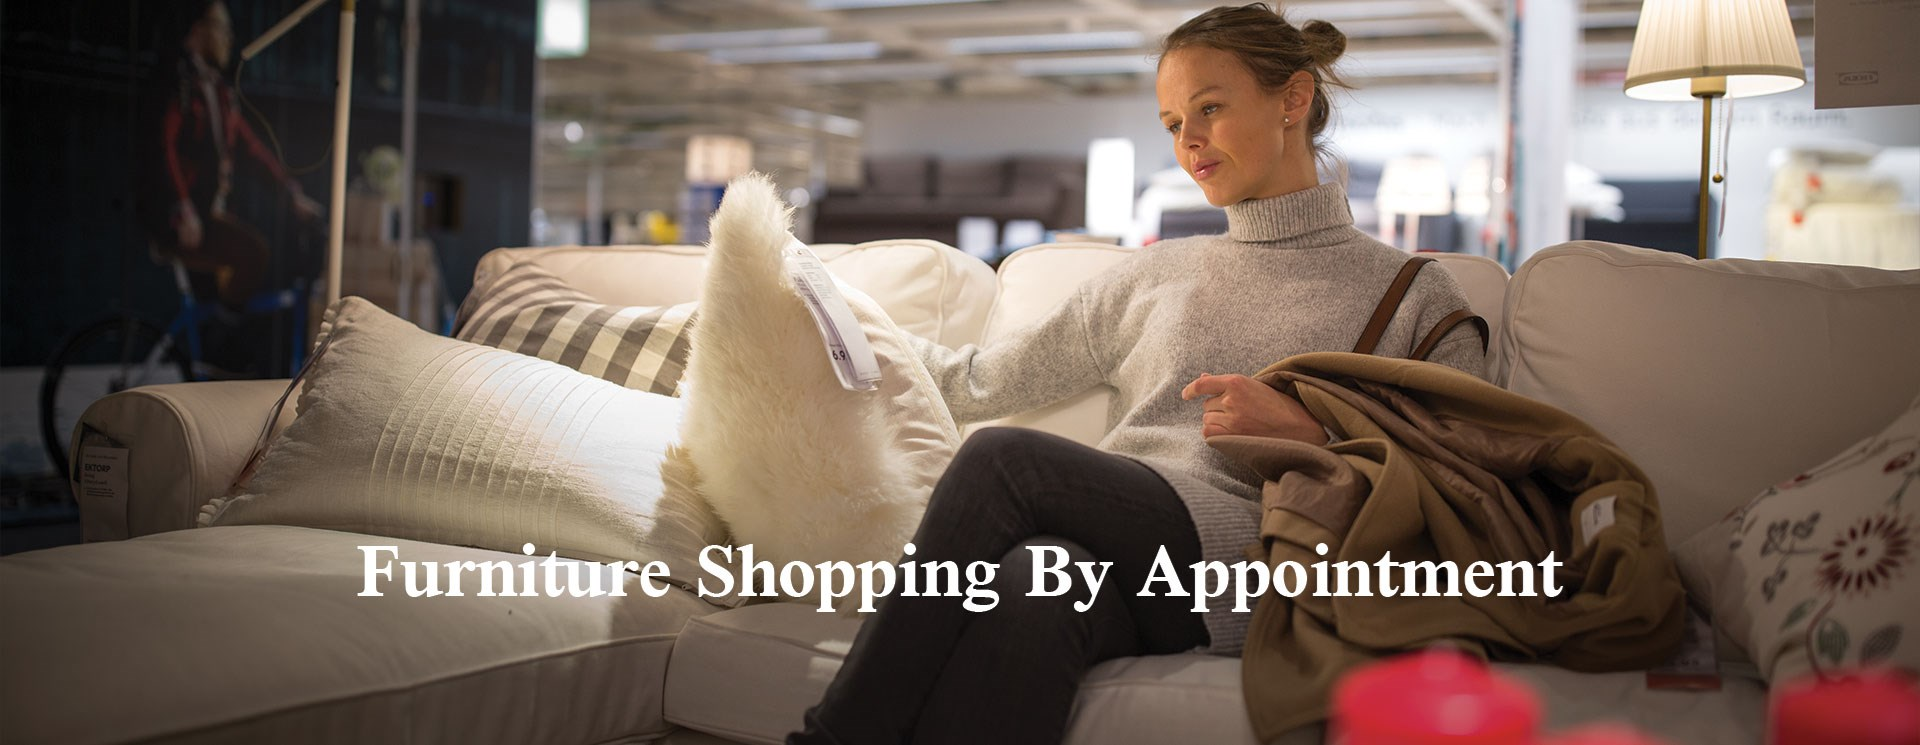 furntiture shopping by appointment